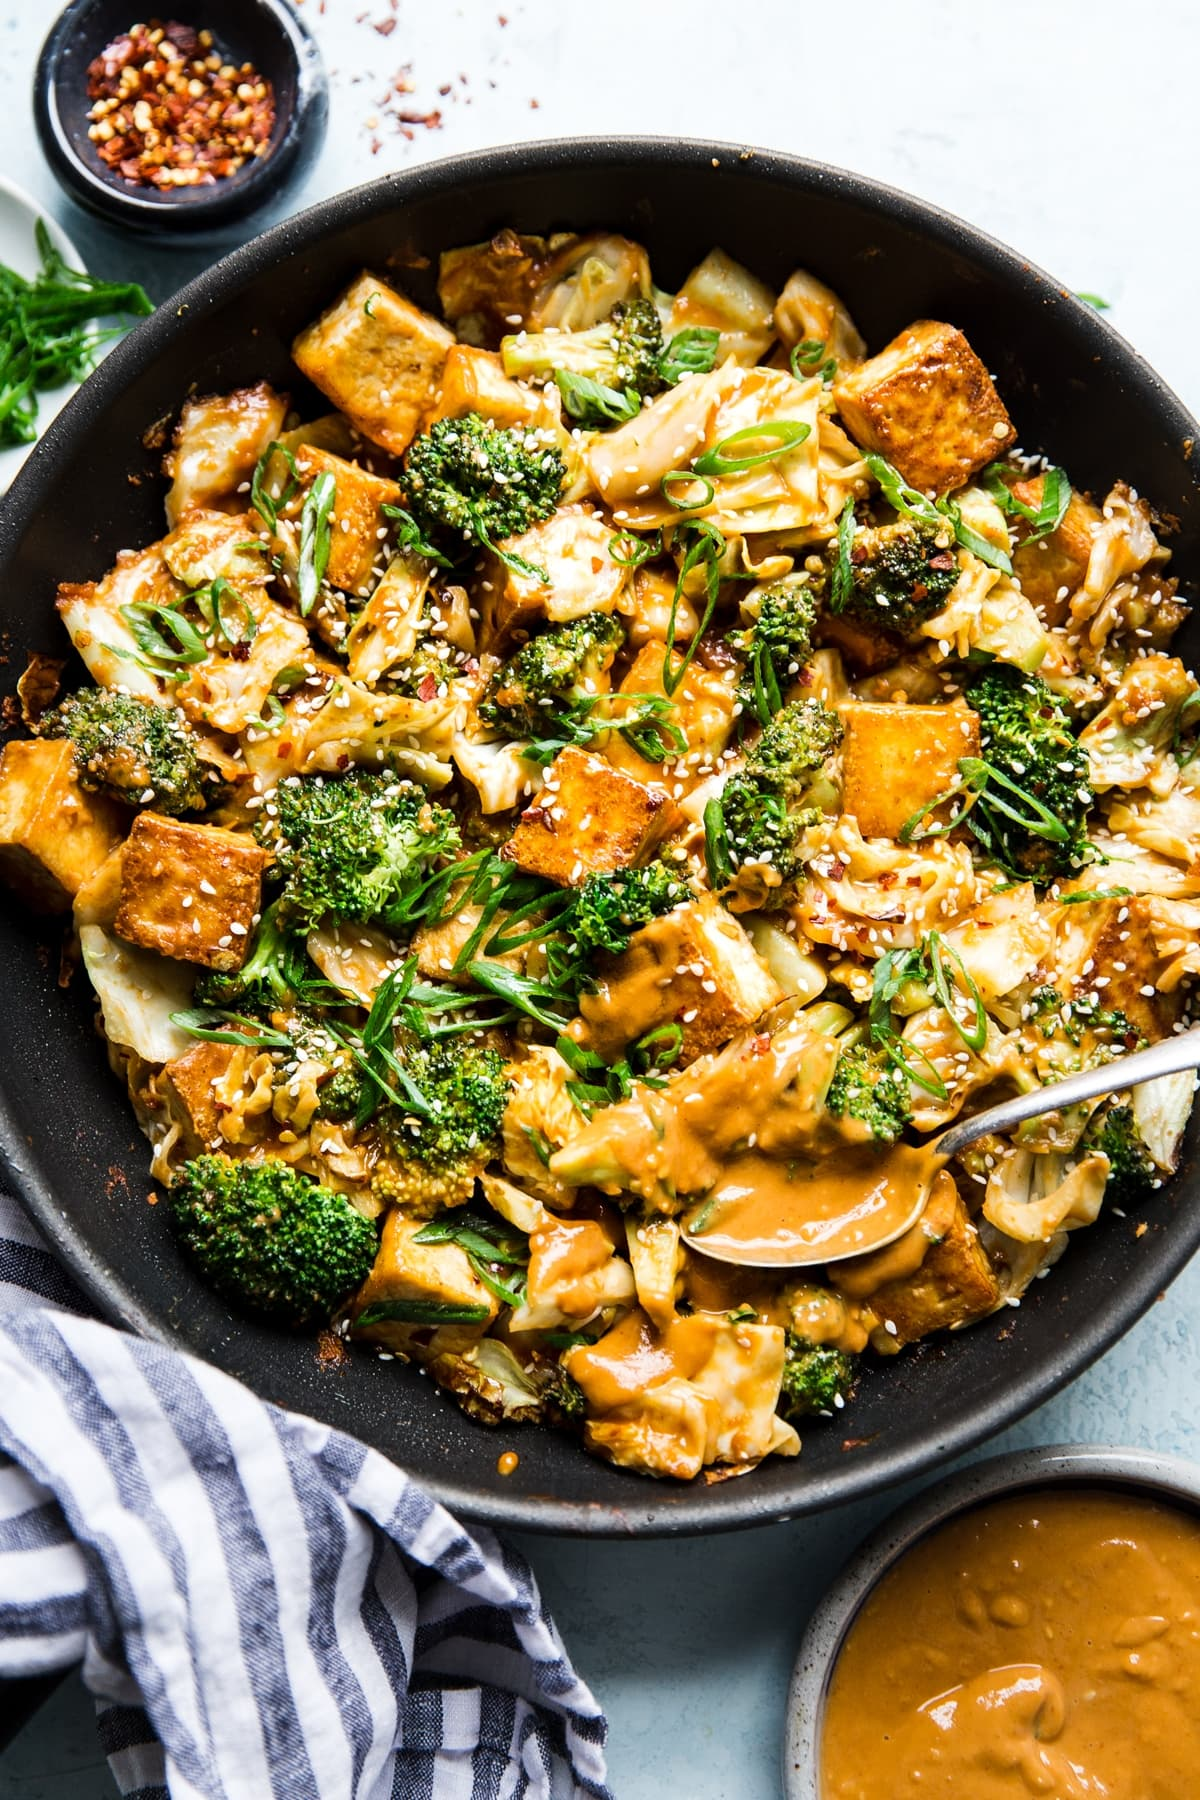 Tofu Stir Fry With Vegetables And Peanut Sauce The Modern Proper